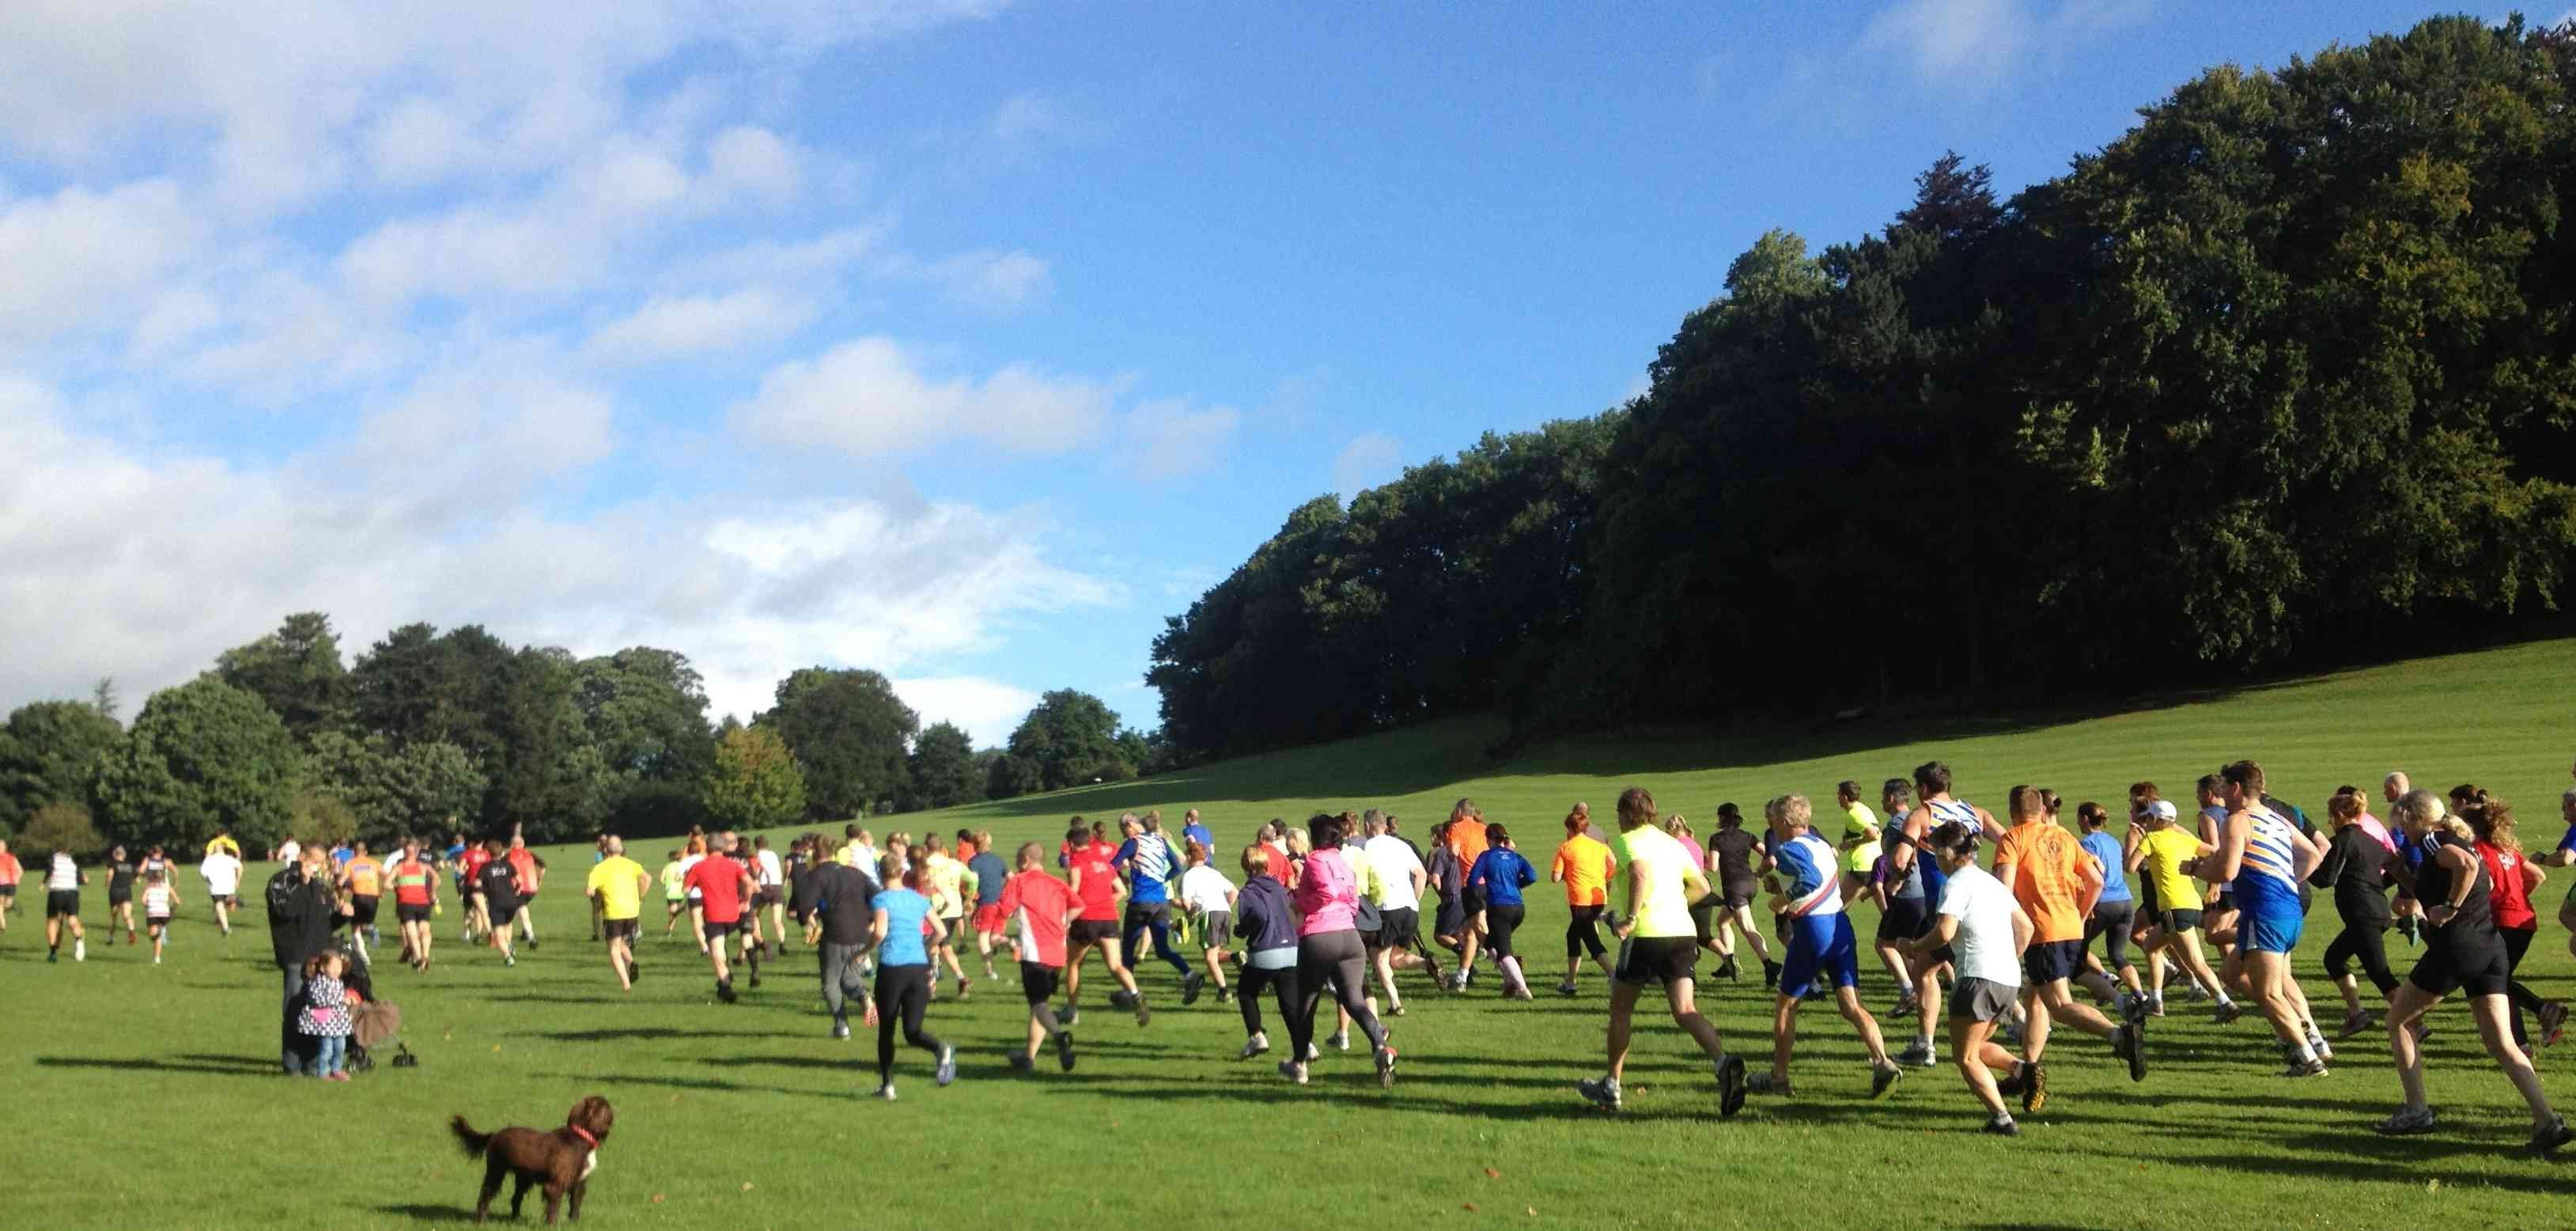 Parkrun Running Club Get Fit Outdoors